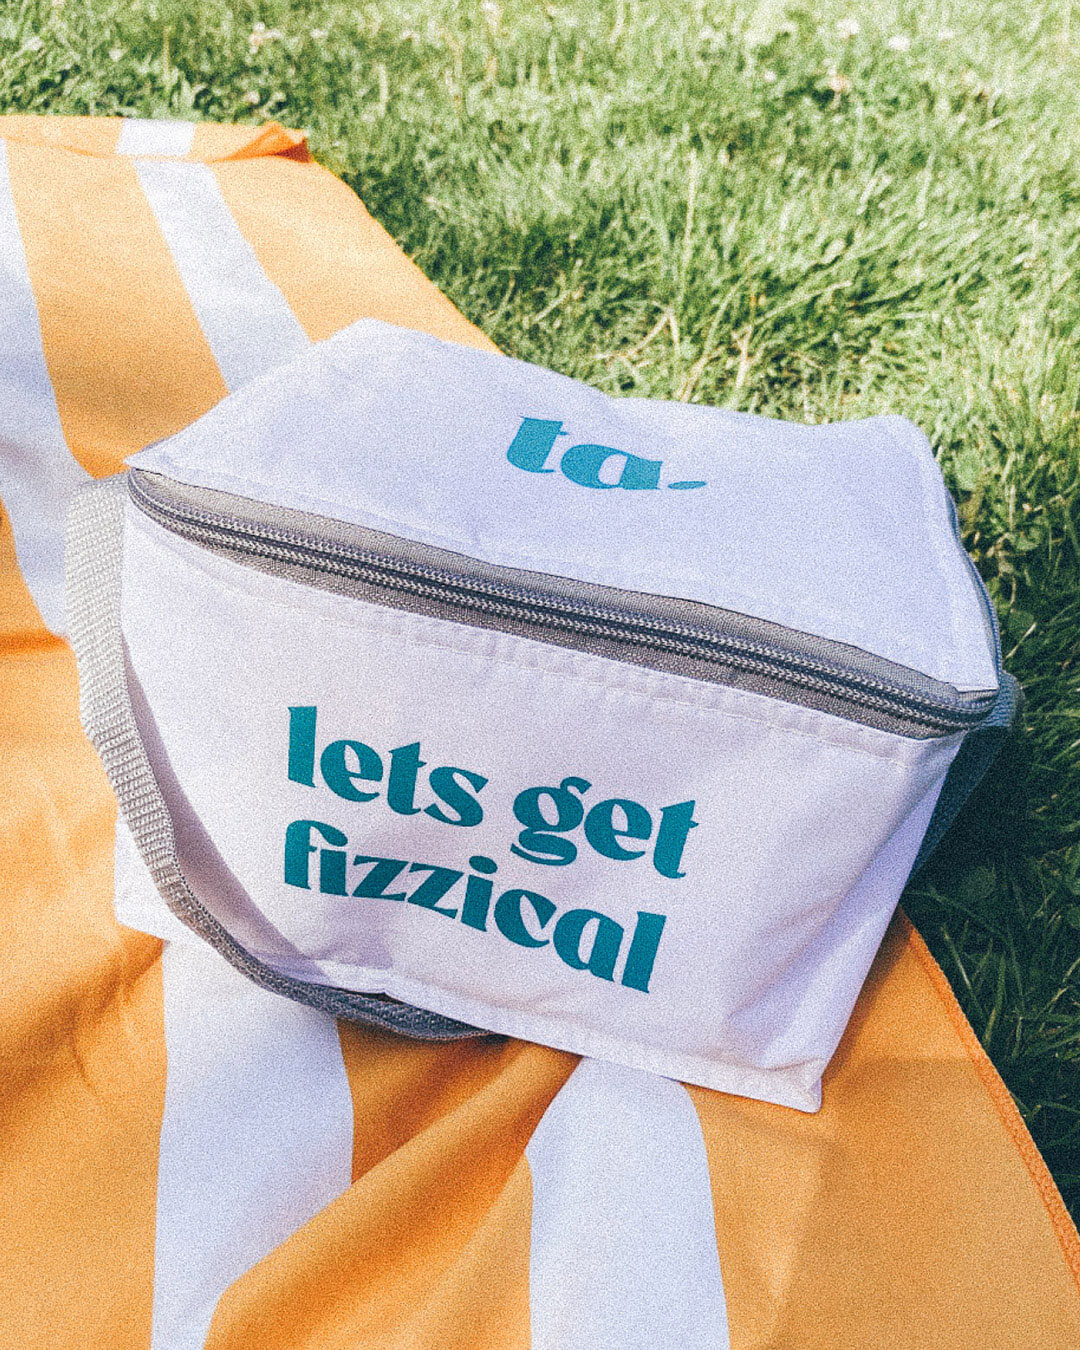 ta. cool bag on a towel on the grass. Links through to our Park Sets Listing Page for shopping